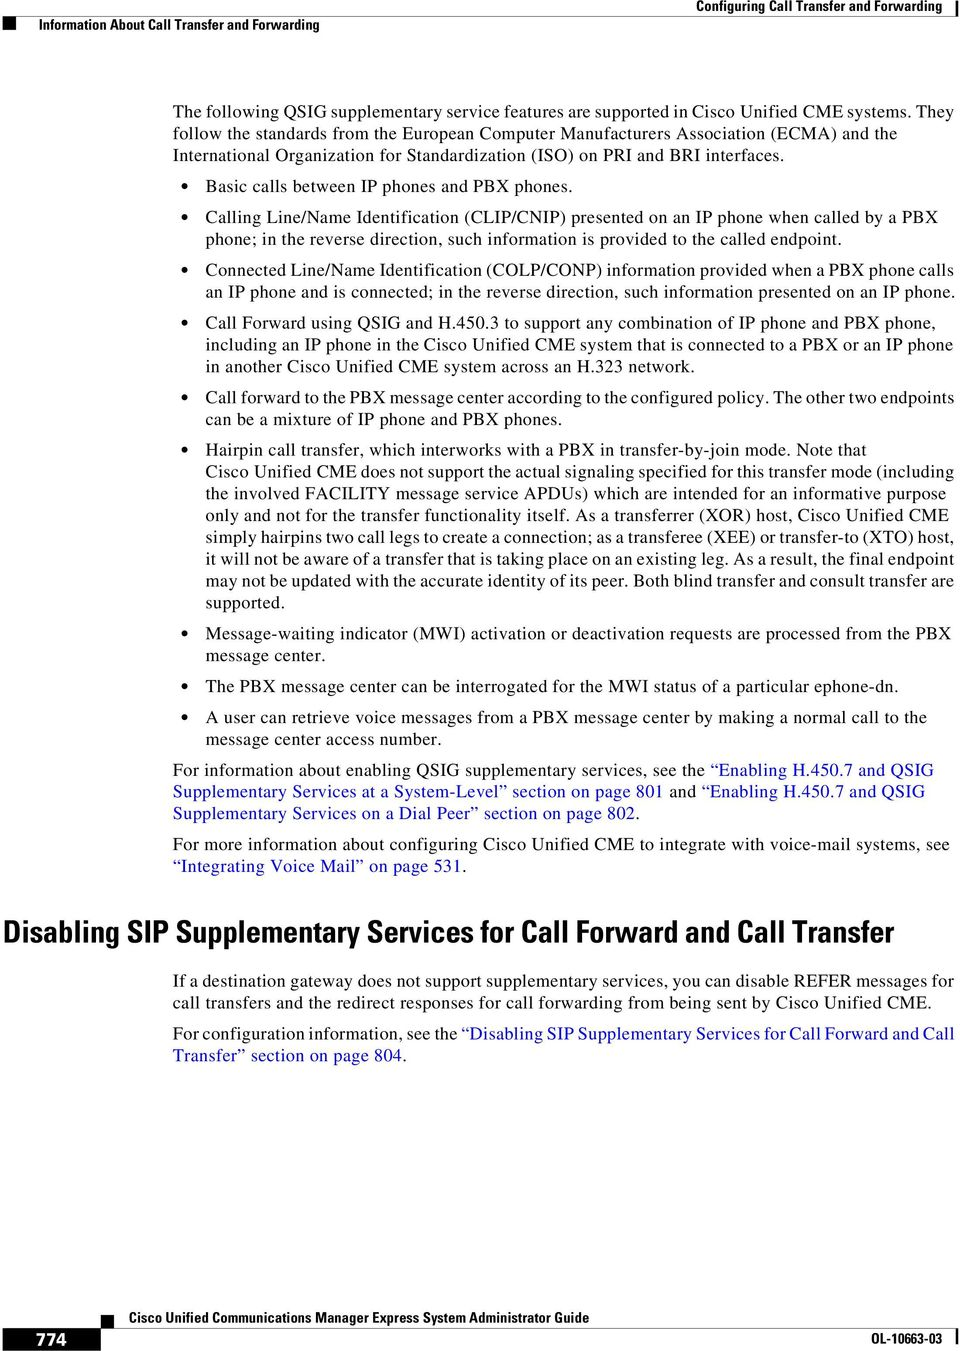 Configuring Call Transfer and Forwarding - PDF